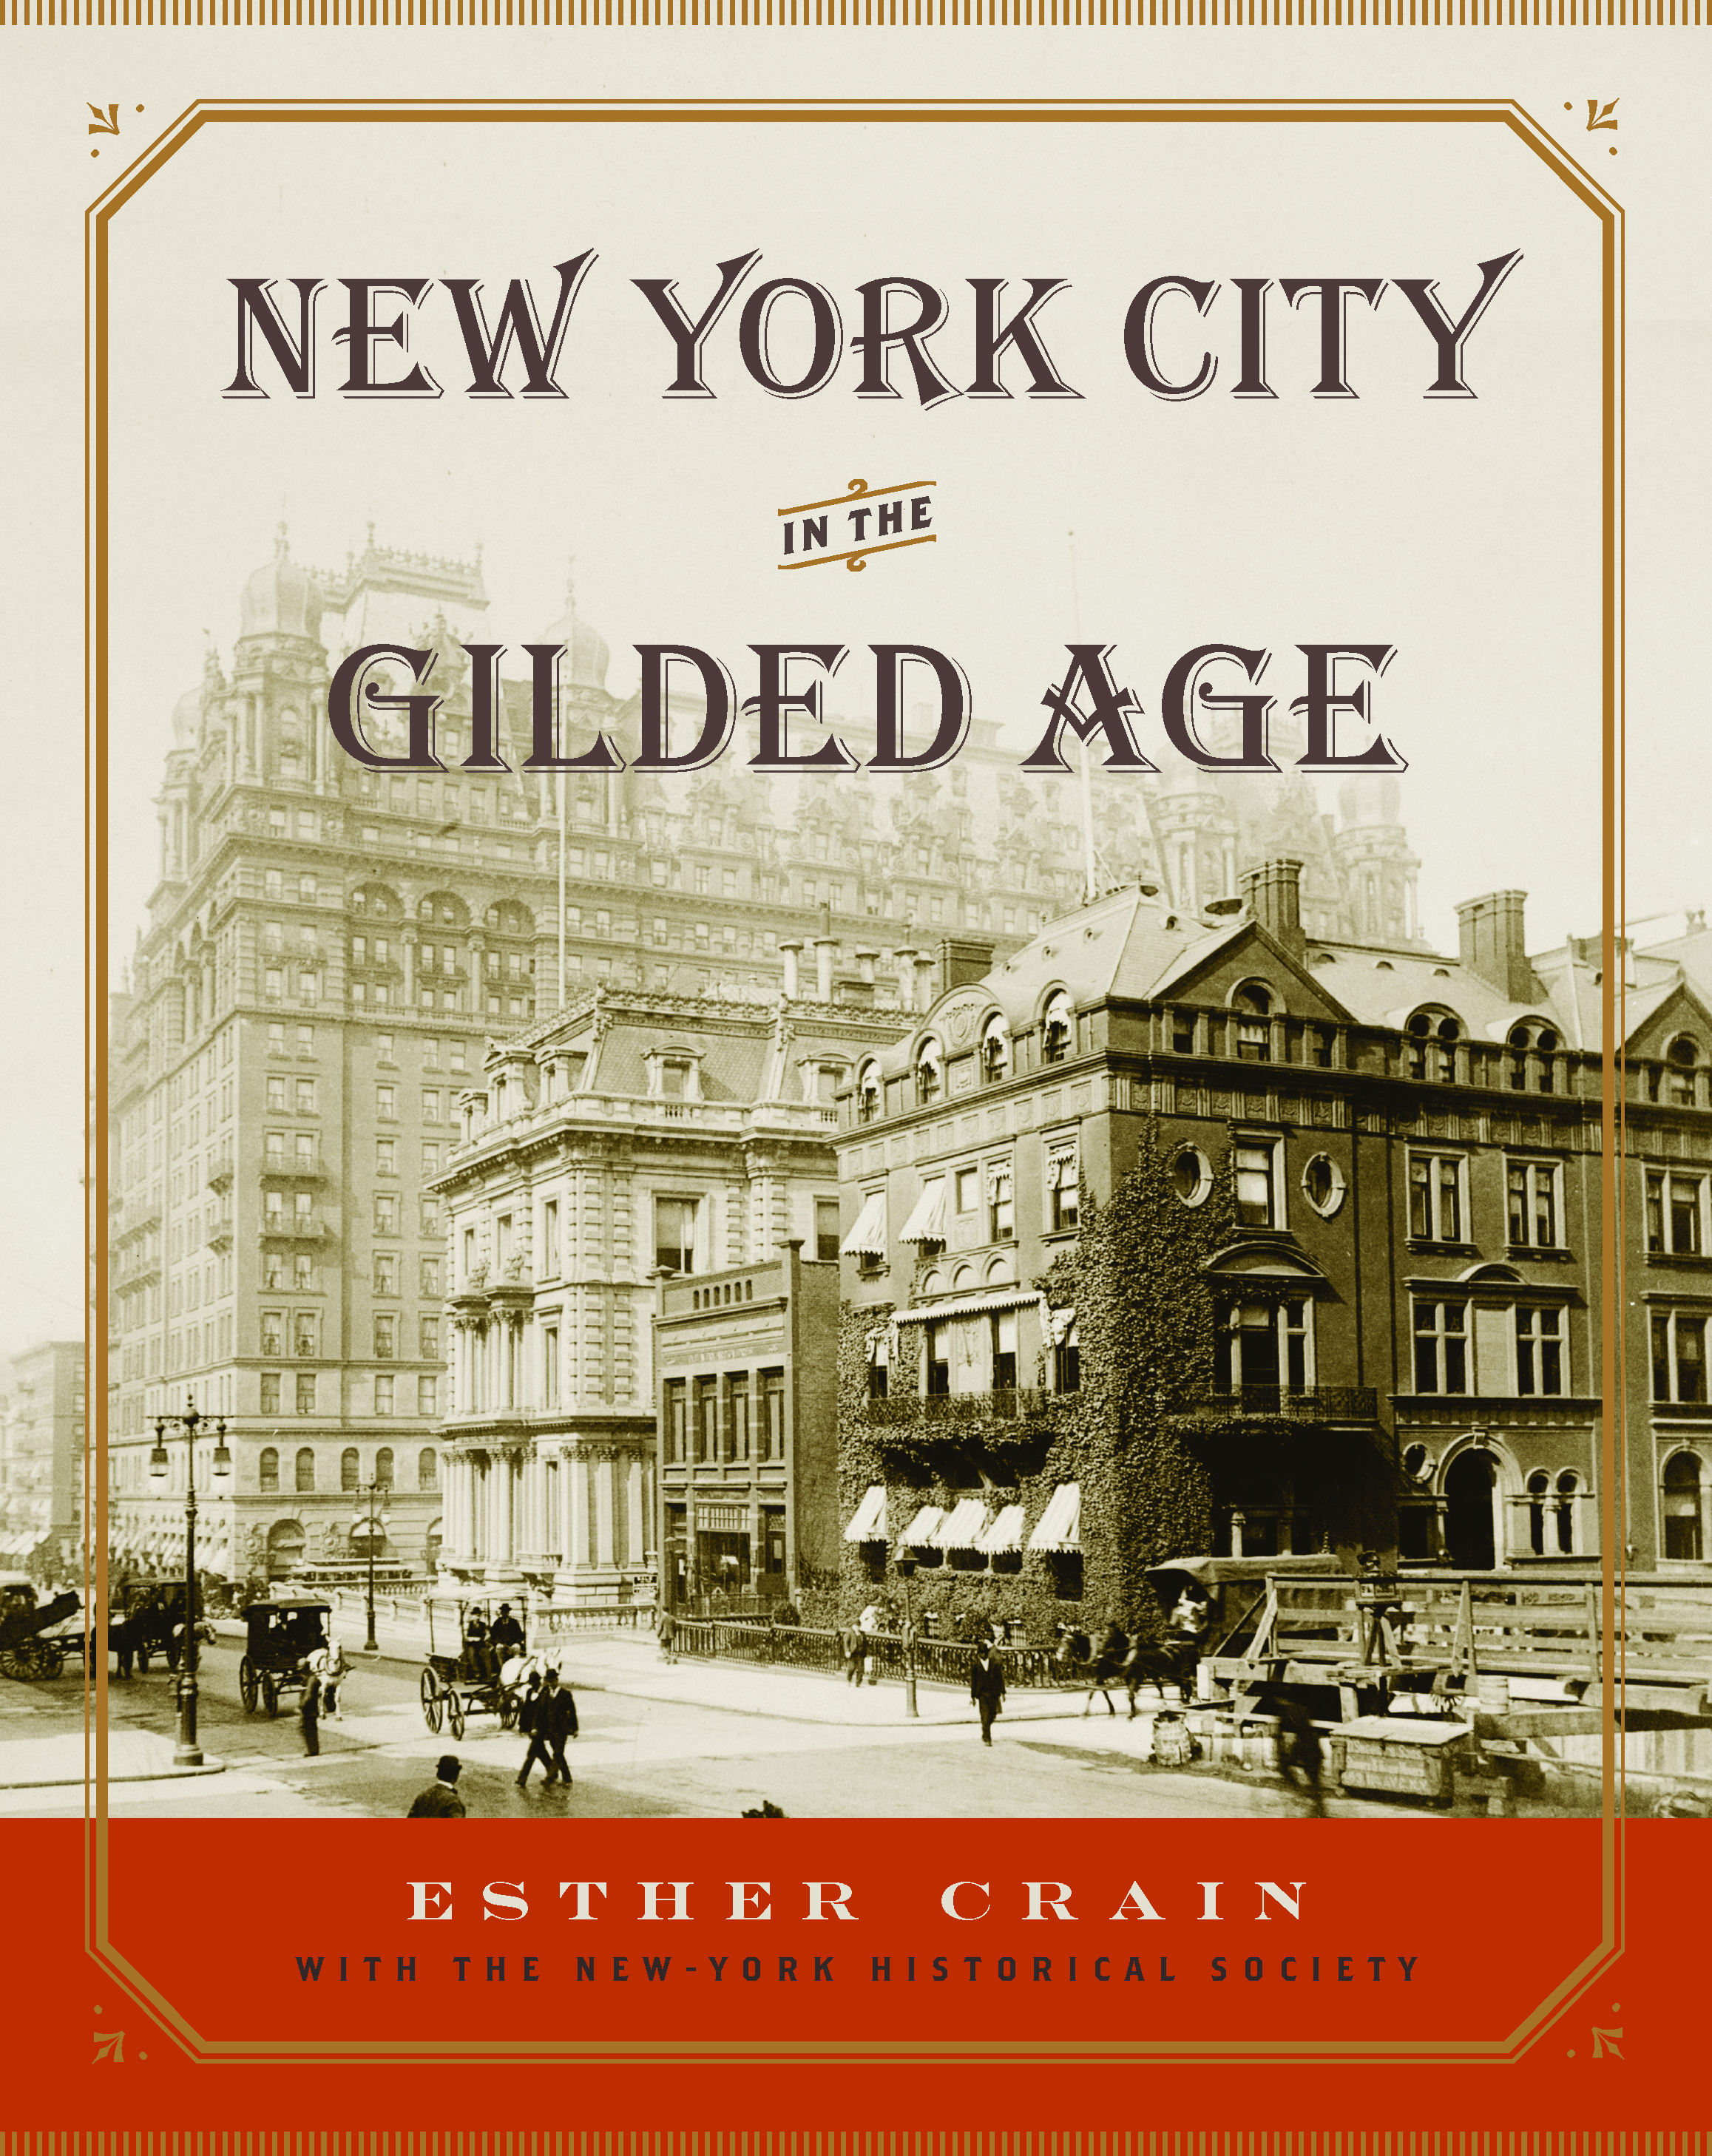 Dating age in new york